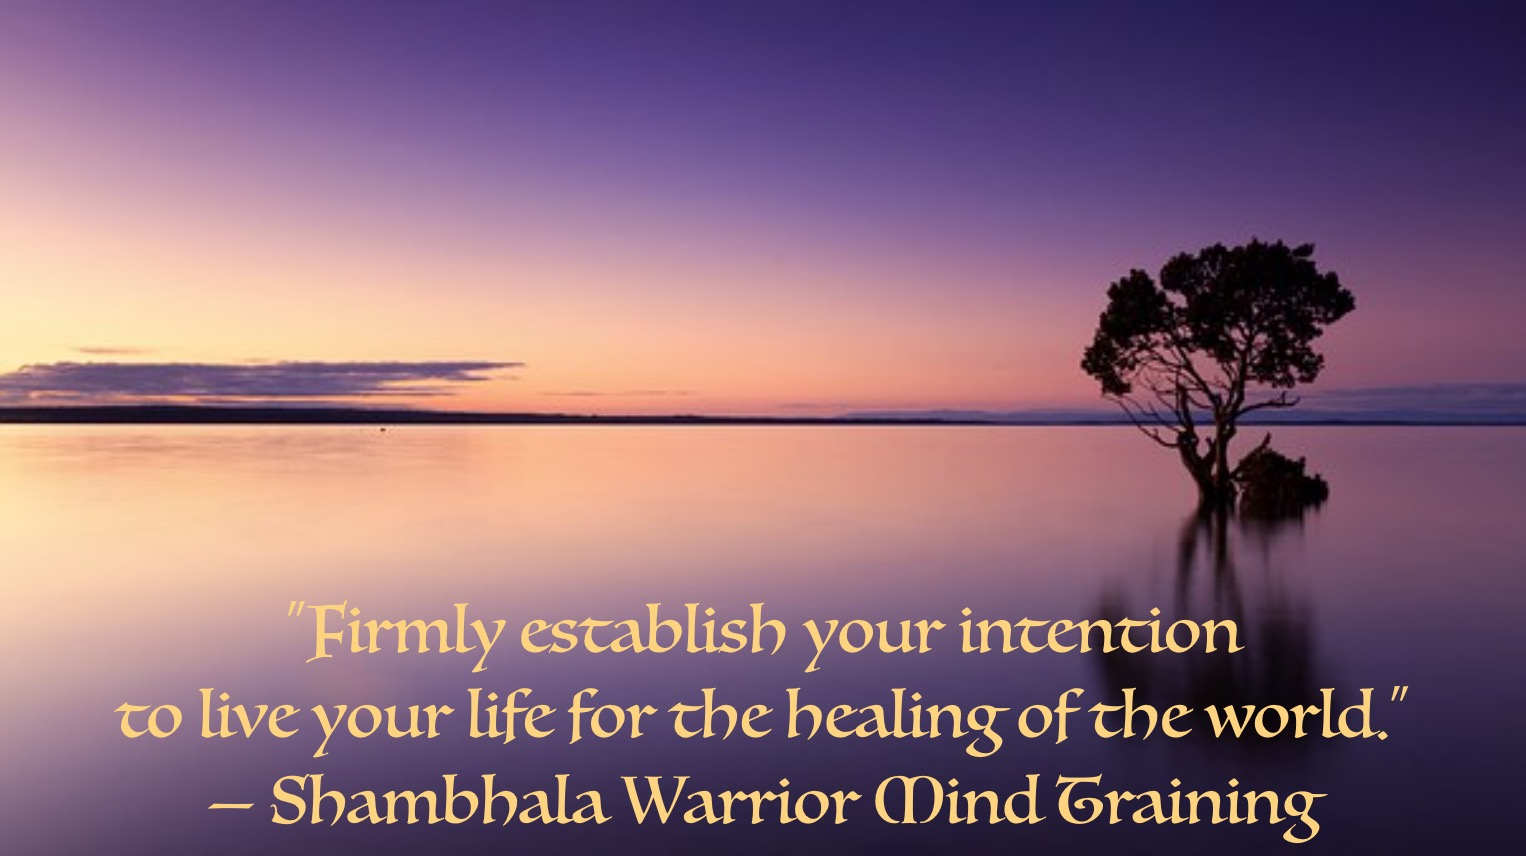 Shambhala Warrior Mind Training